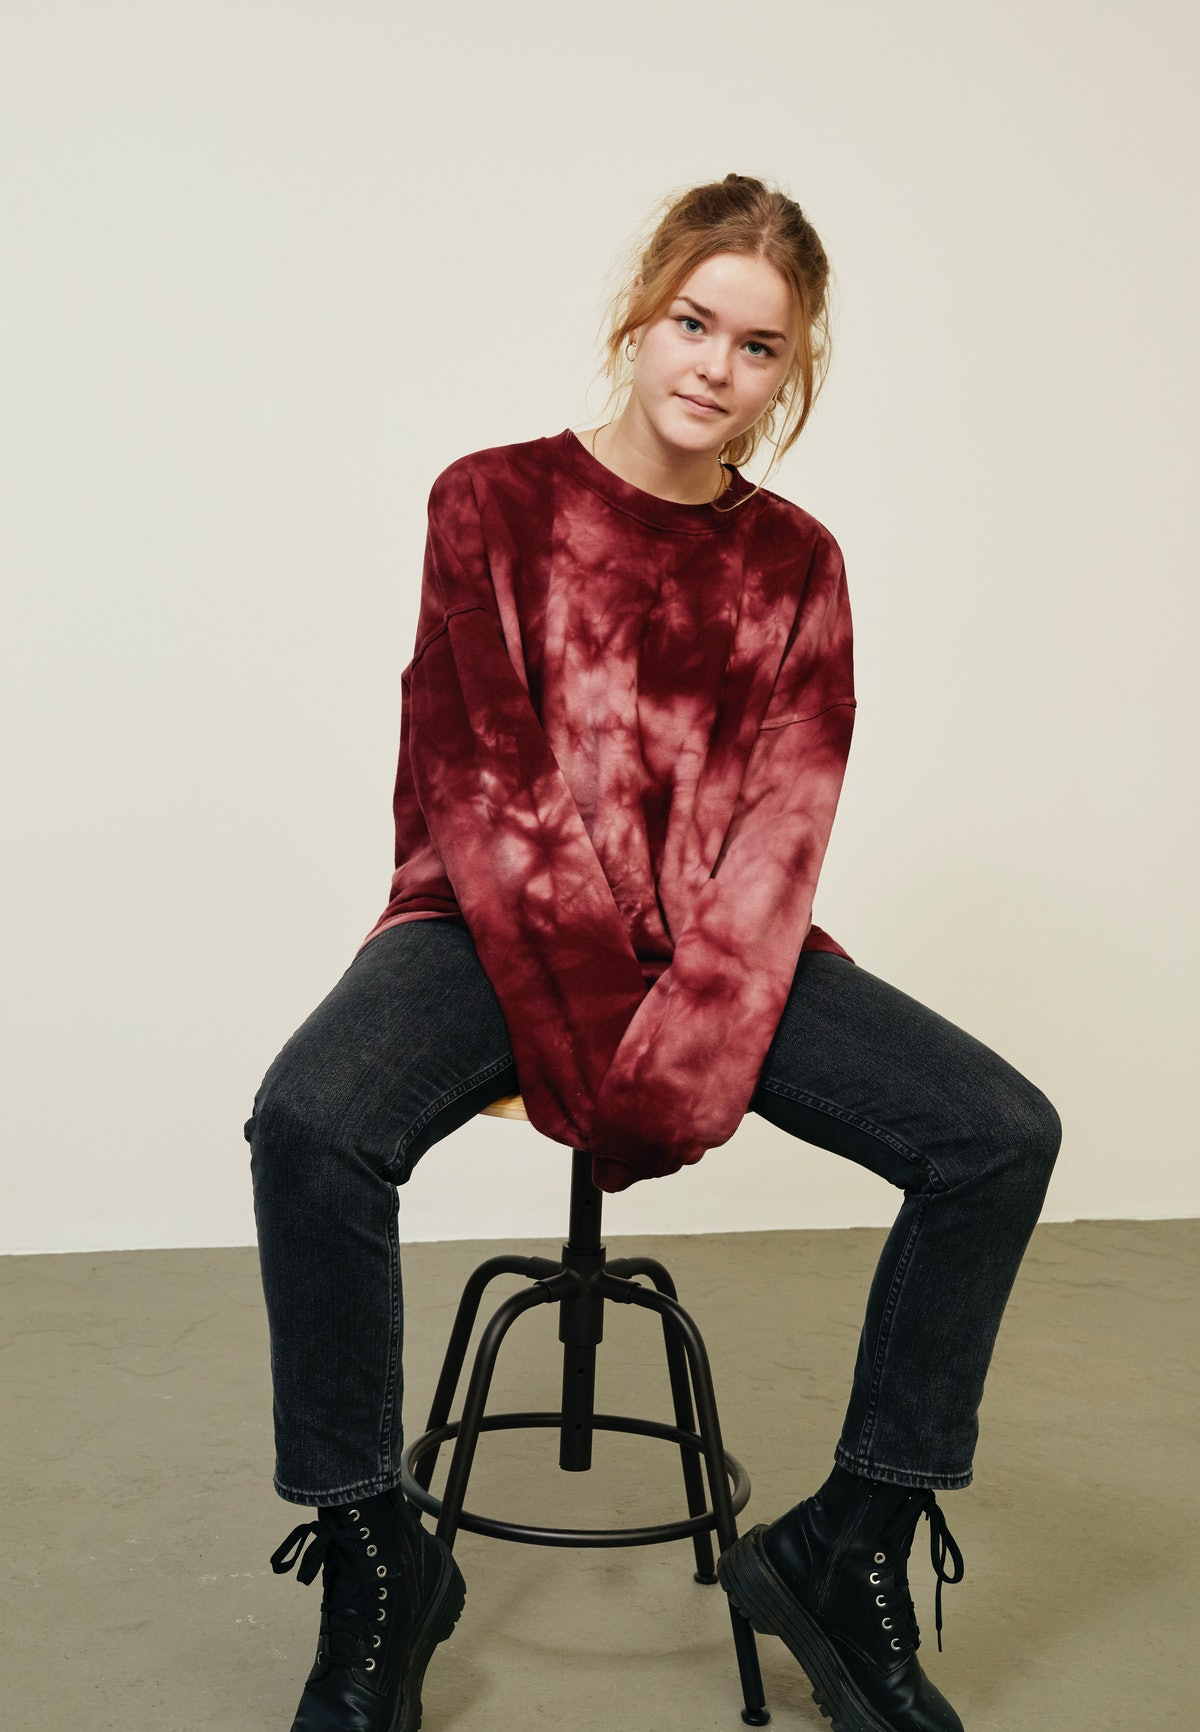 A young woman poses on a stool while wearing a tie-dye crewneck sweatshirt, black jeans, and combat boots for fall.